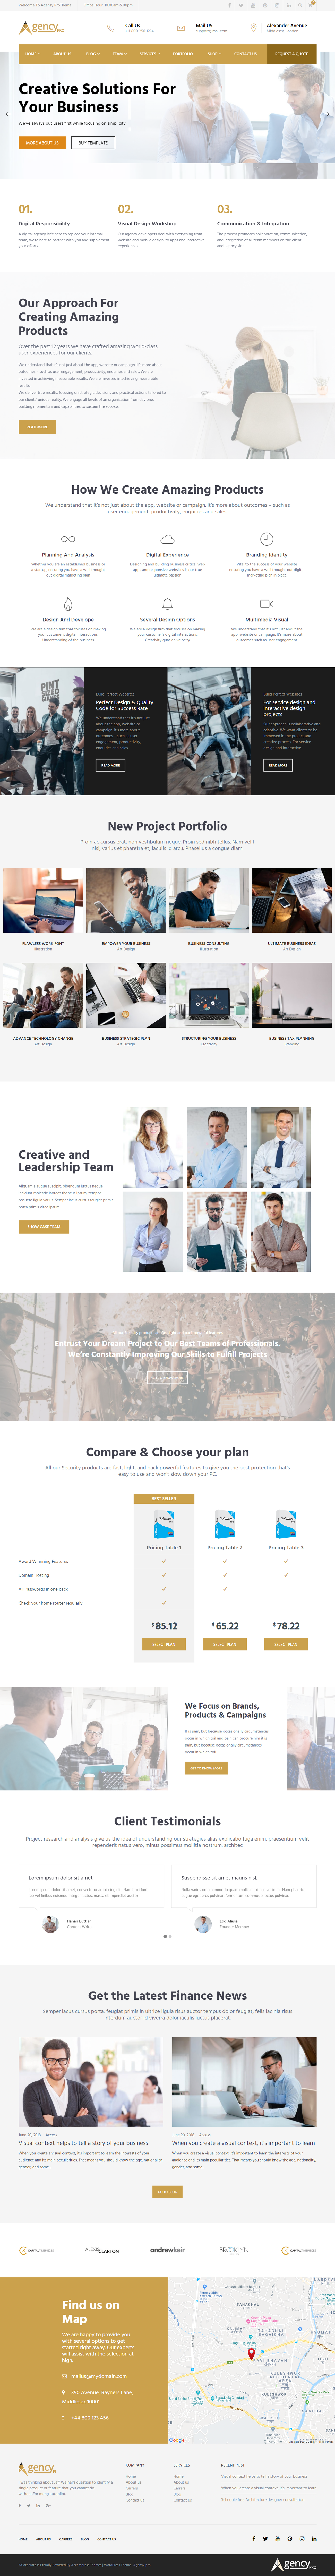 Agency Pro - Best Coming Soon and Under Construction Premium WordPress Themes and Templates